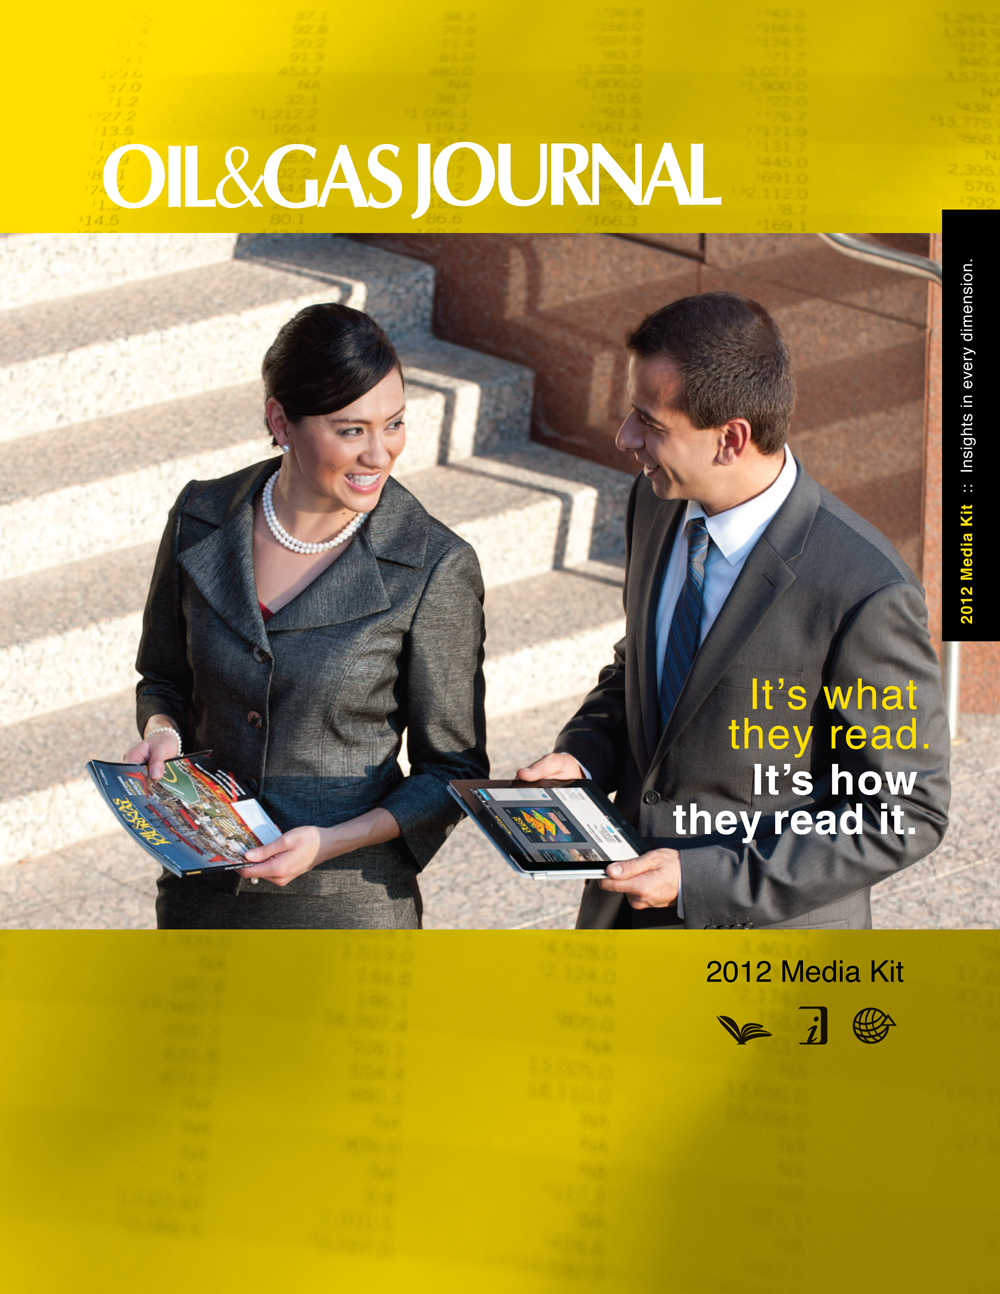 Penwell – Oil & Gas Journal Media Kit